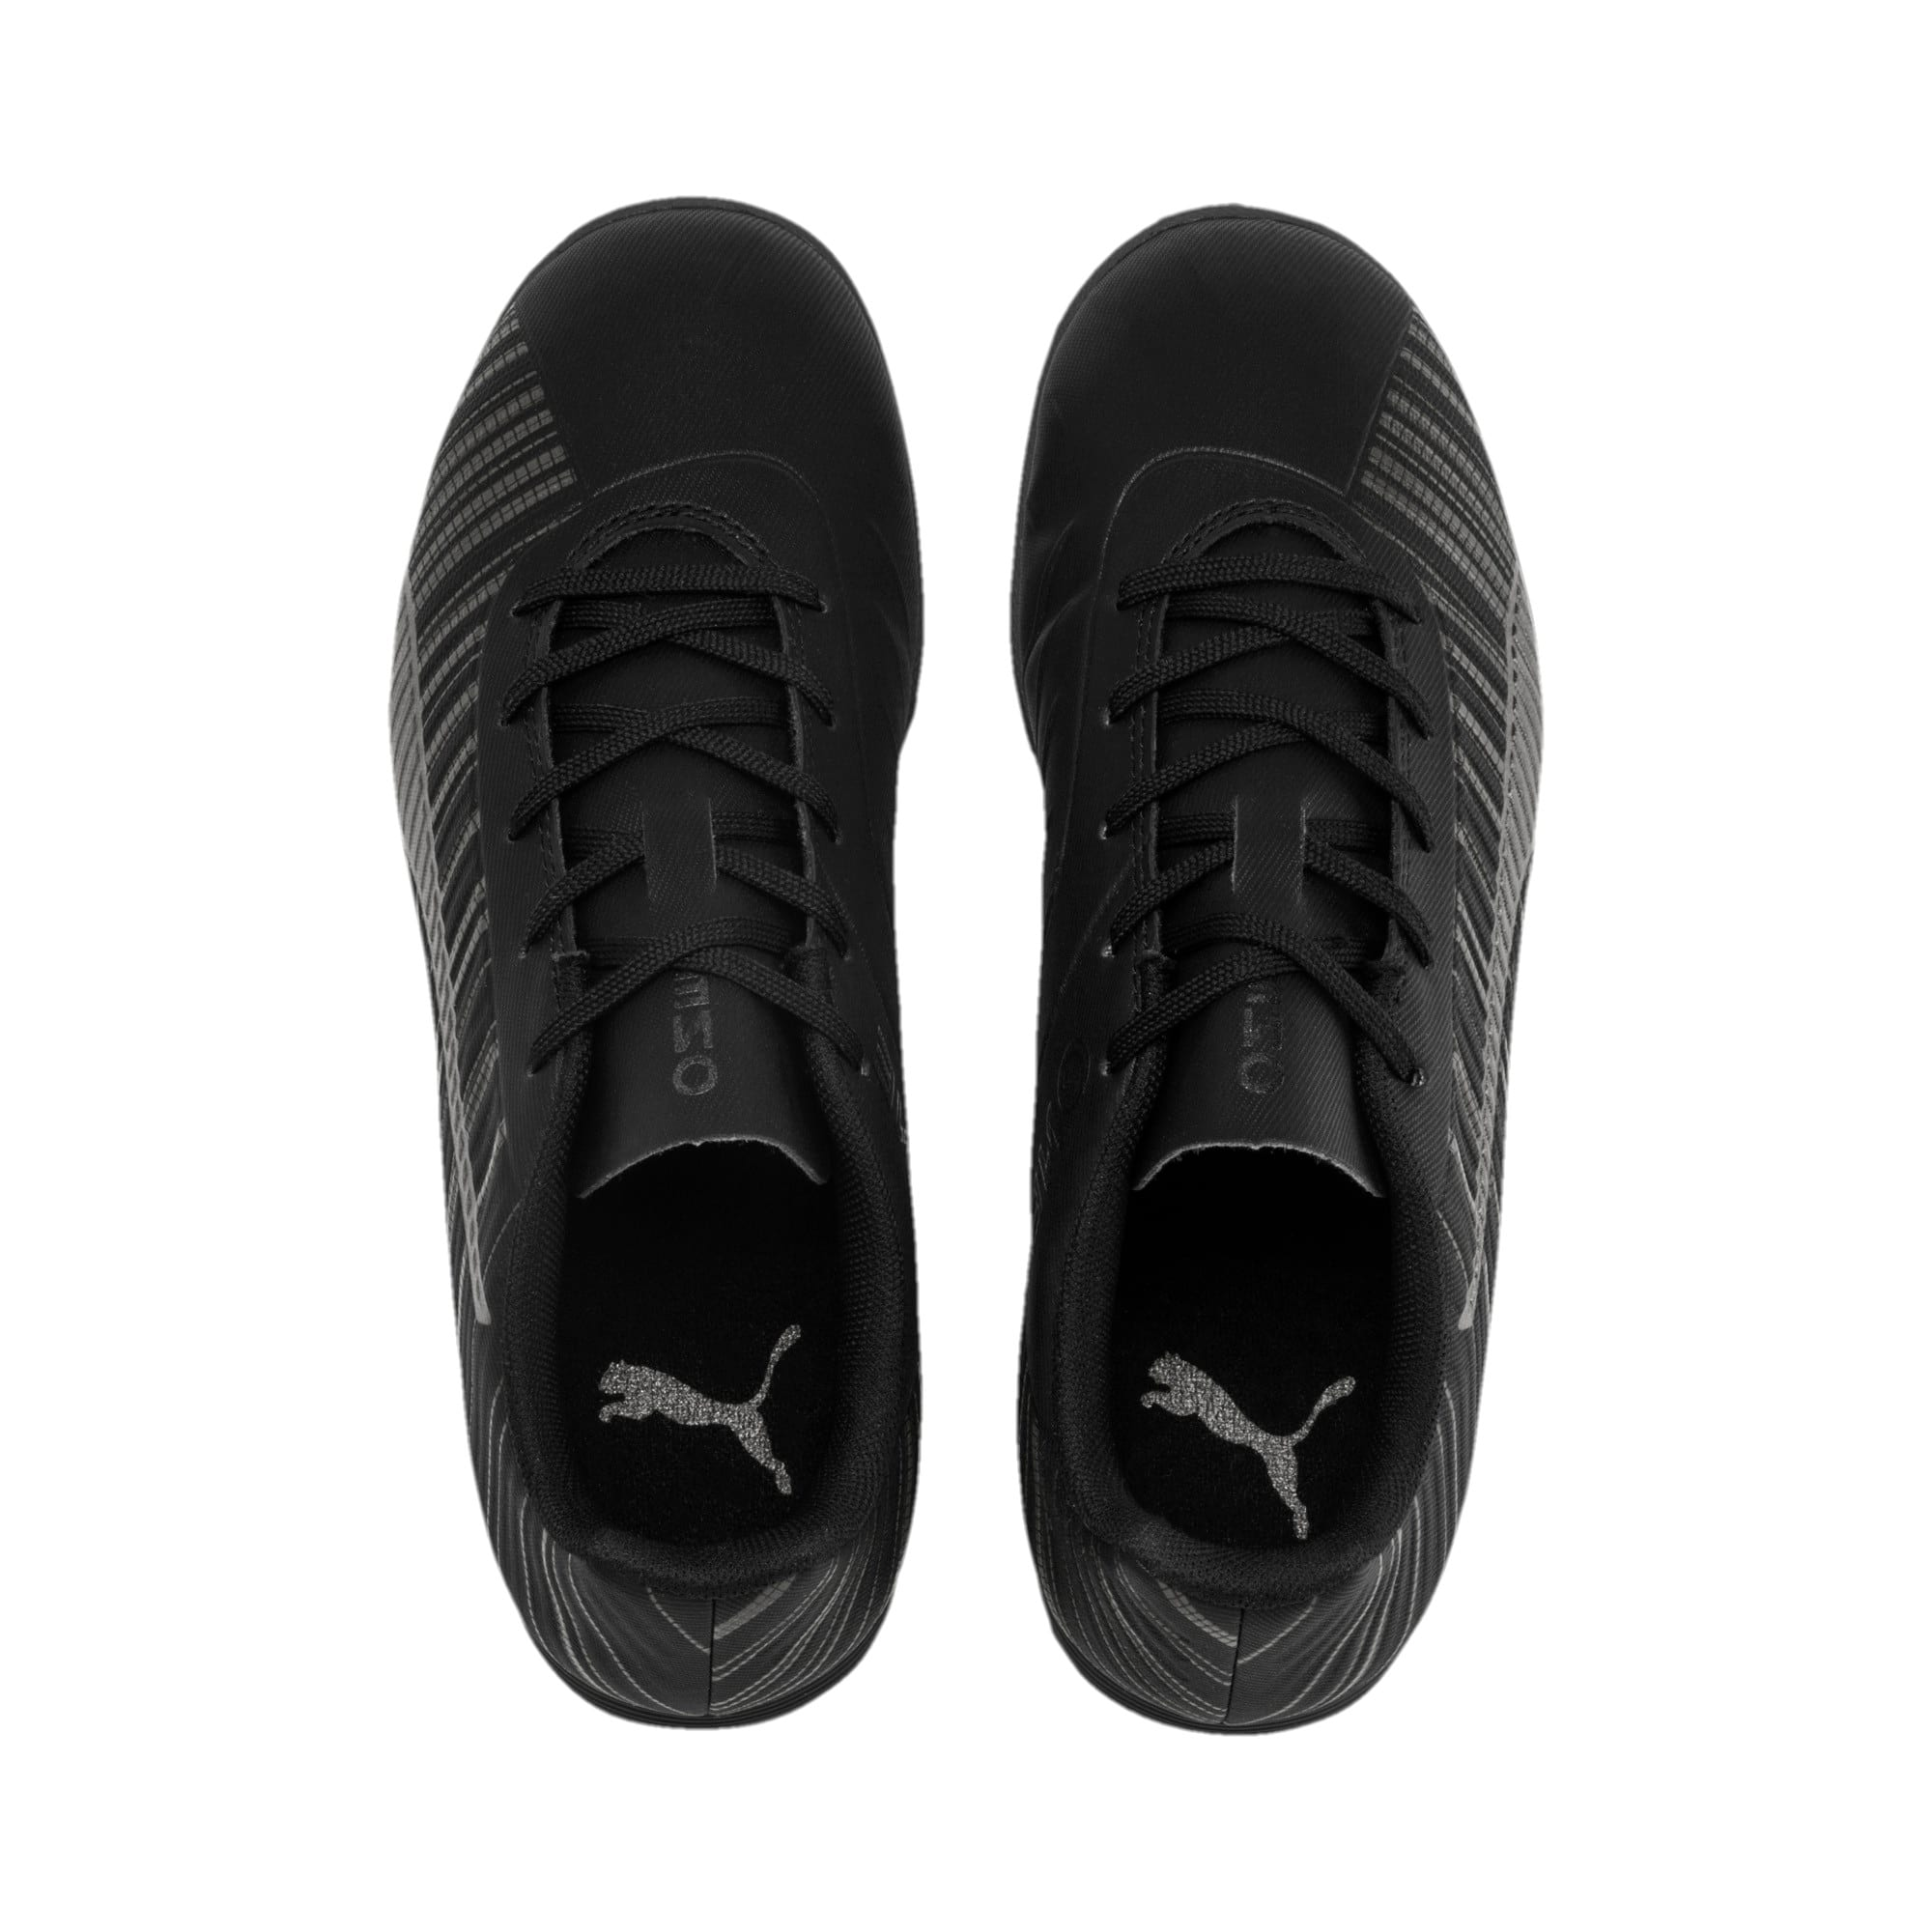 Thumbnail 6 of PUMA ONE 5.4 IT Youth Fußballschuhe, Black-Black-Puma Aged Silver, medium